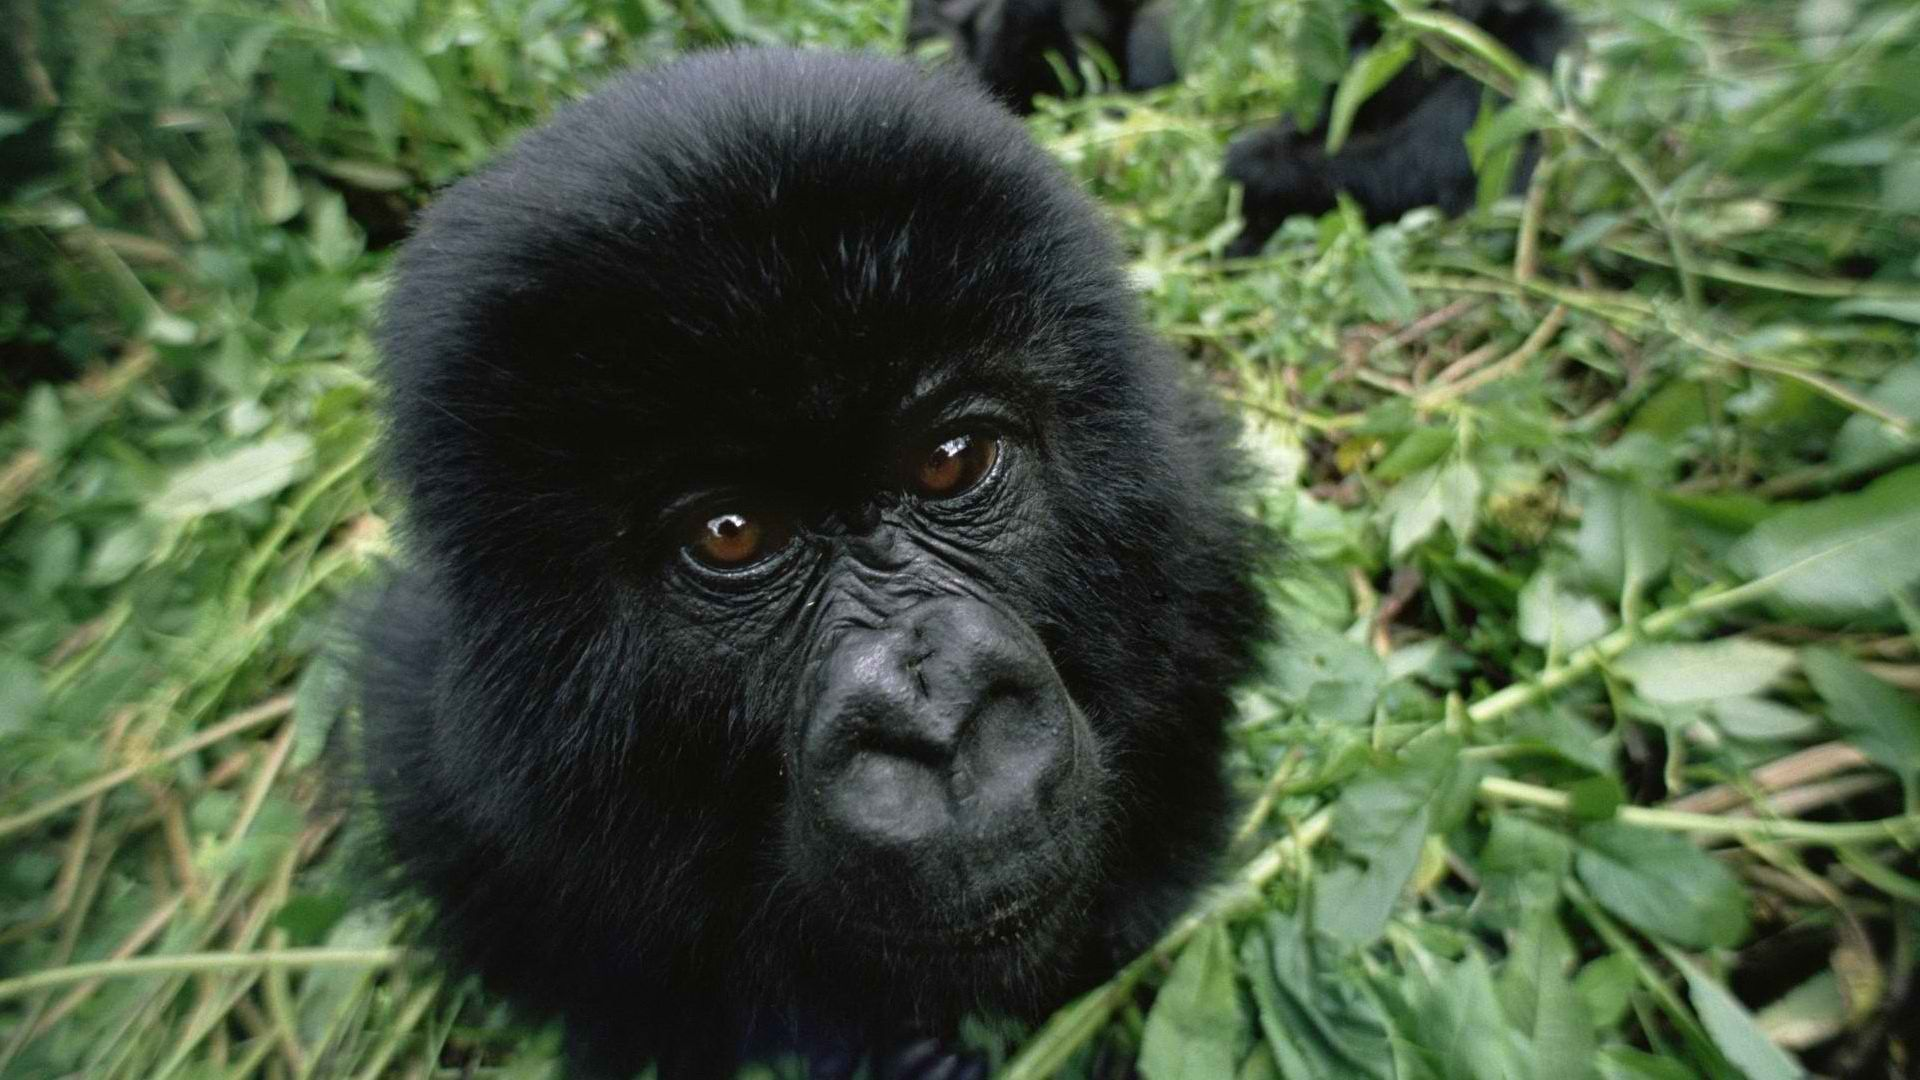 Monkey Black Photo Gorilla